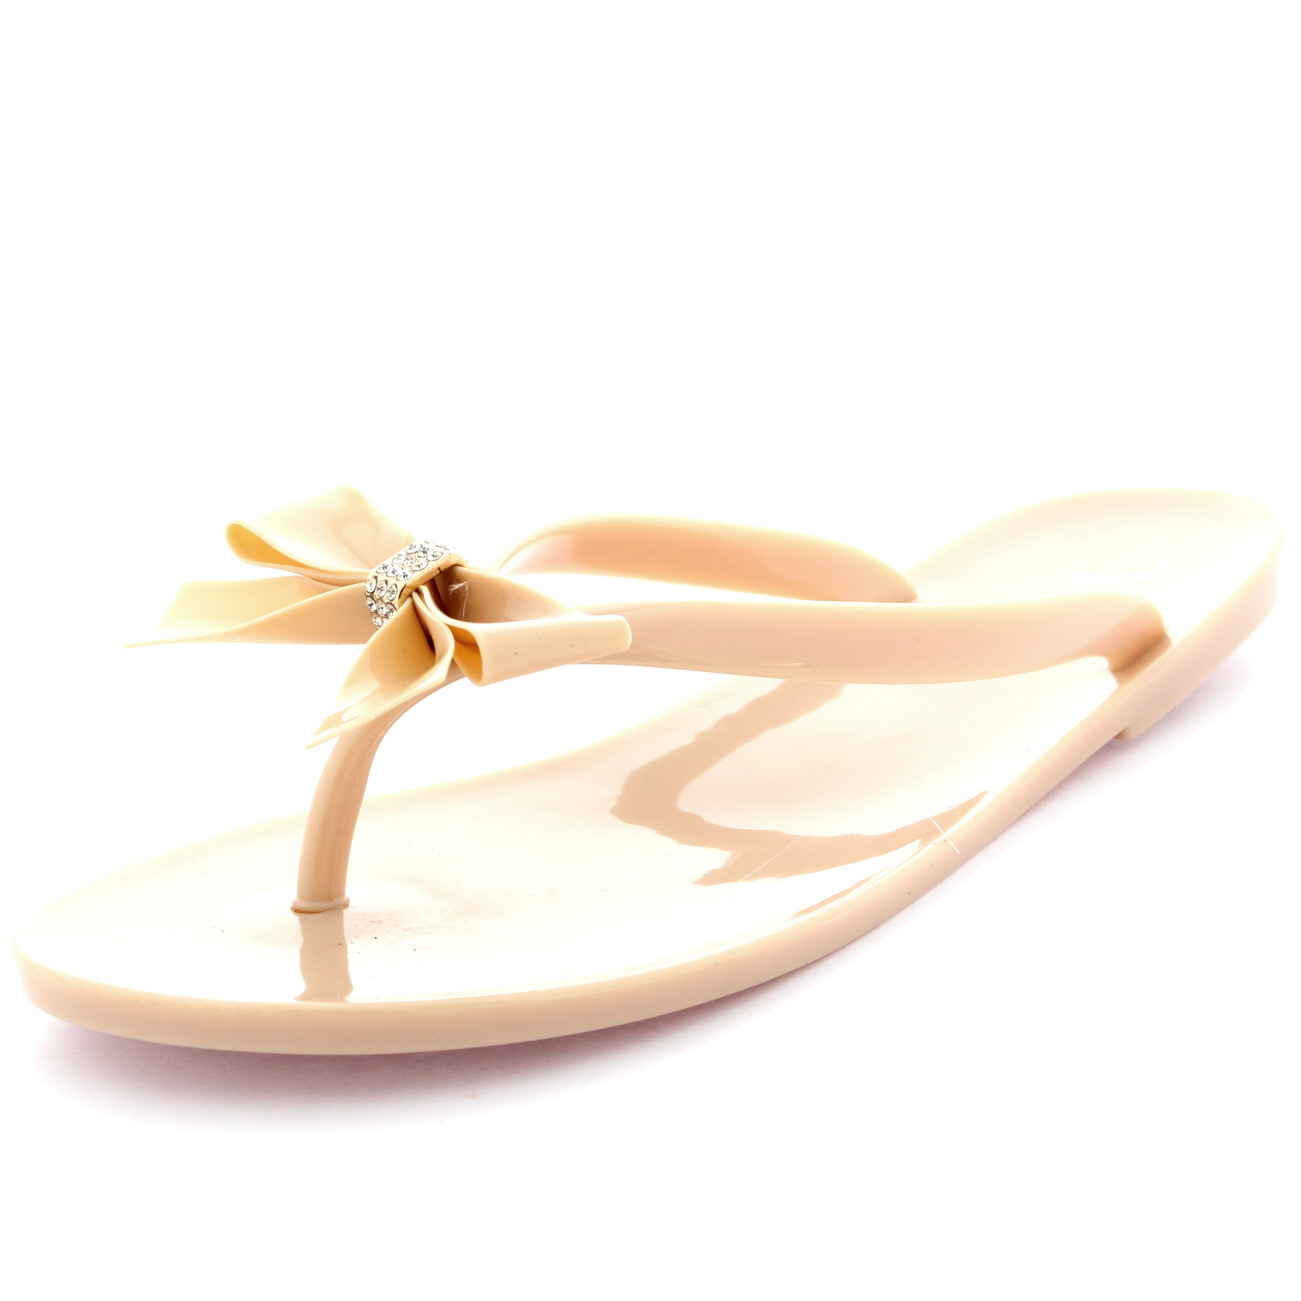 256f227575cf24 Womens Summer Holiday Slip On Beach Shoes Bow Jelly Flip Flops ...